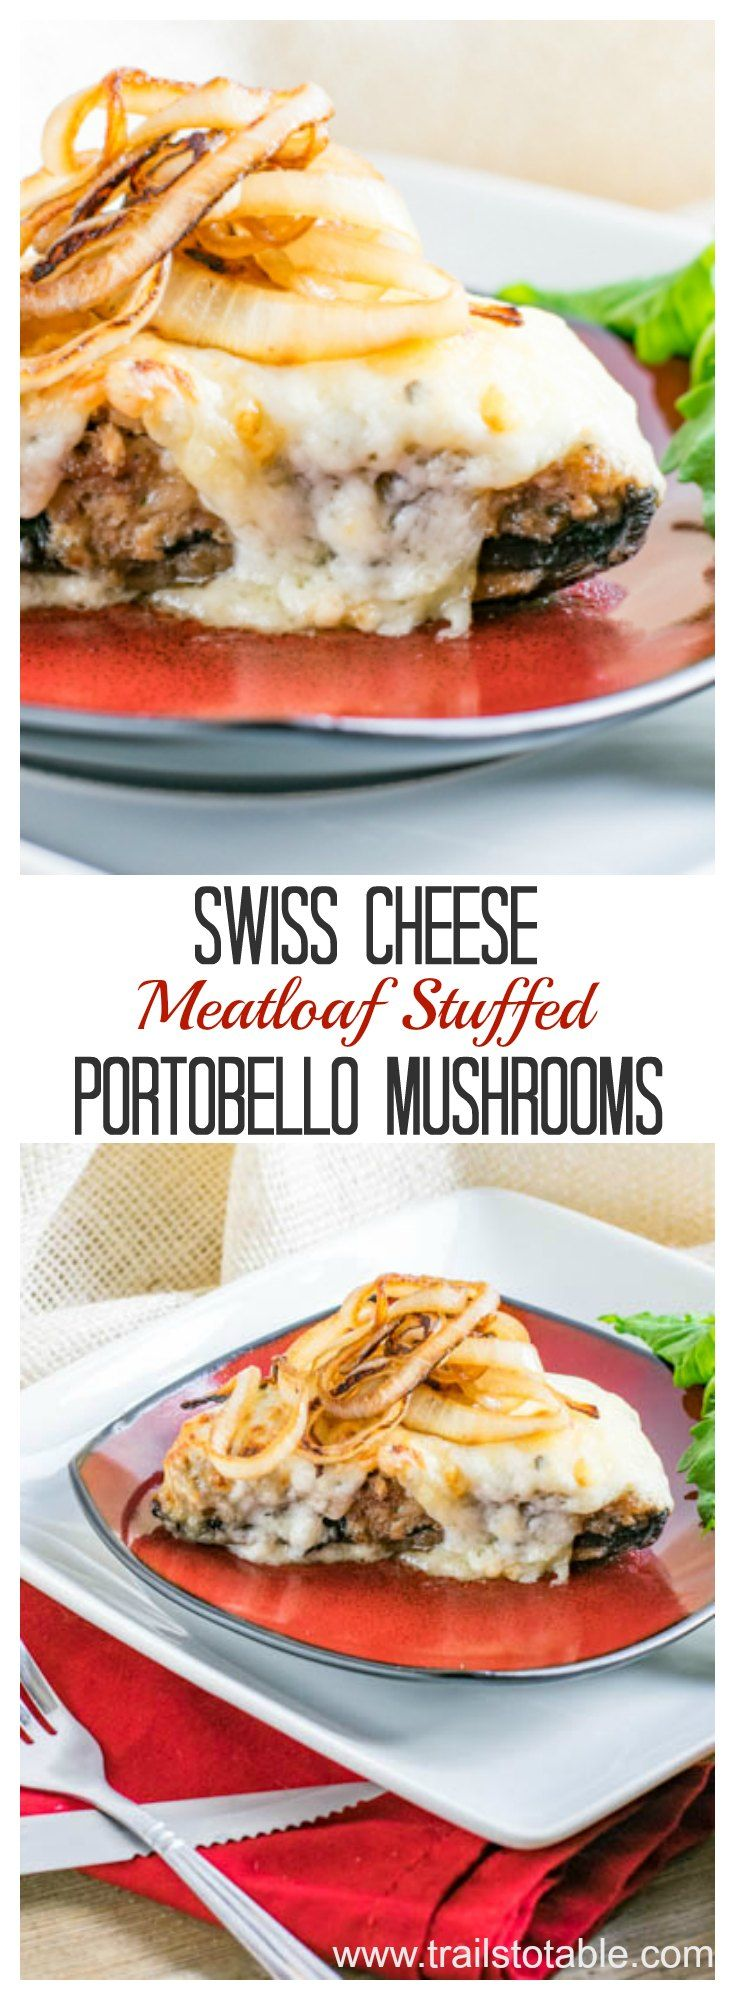 Swiss Meatloaf Stuffed Portobello Mushrooms. Oven baked portobellos stuffed with a delicious meatloaf filling, and topped with a Swiss Cheese sauce!